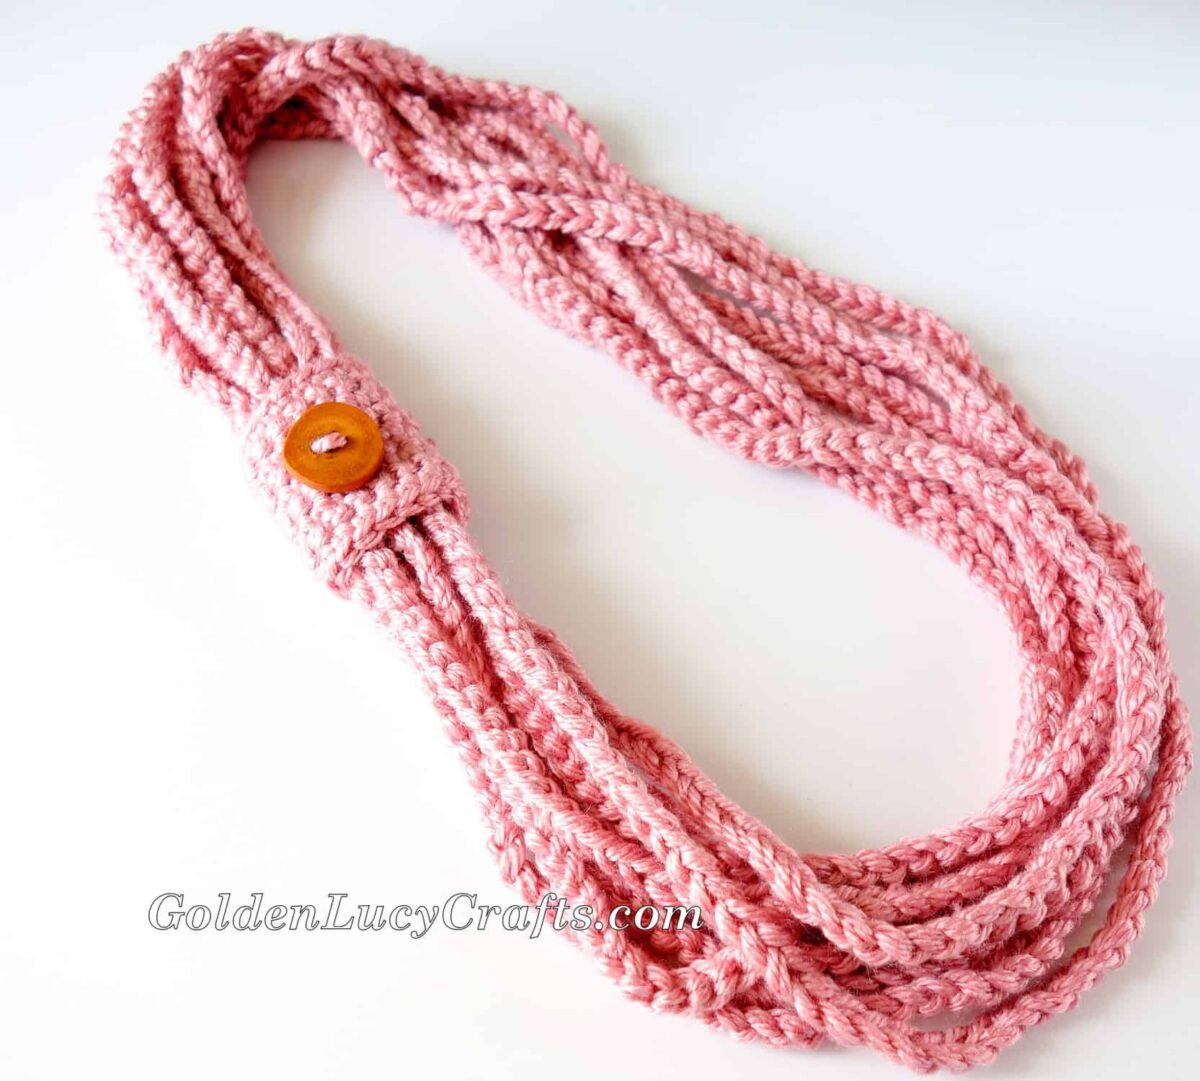 Crochet Chain Scarf embellished with large wooden button.